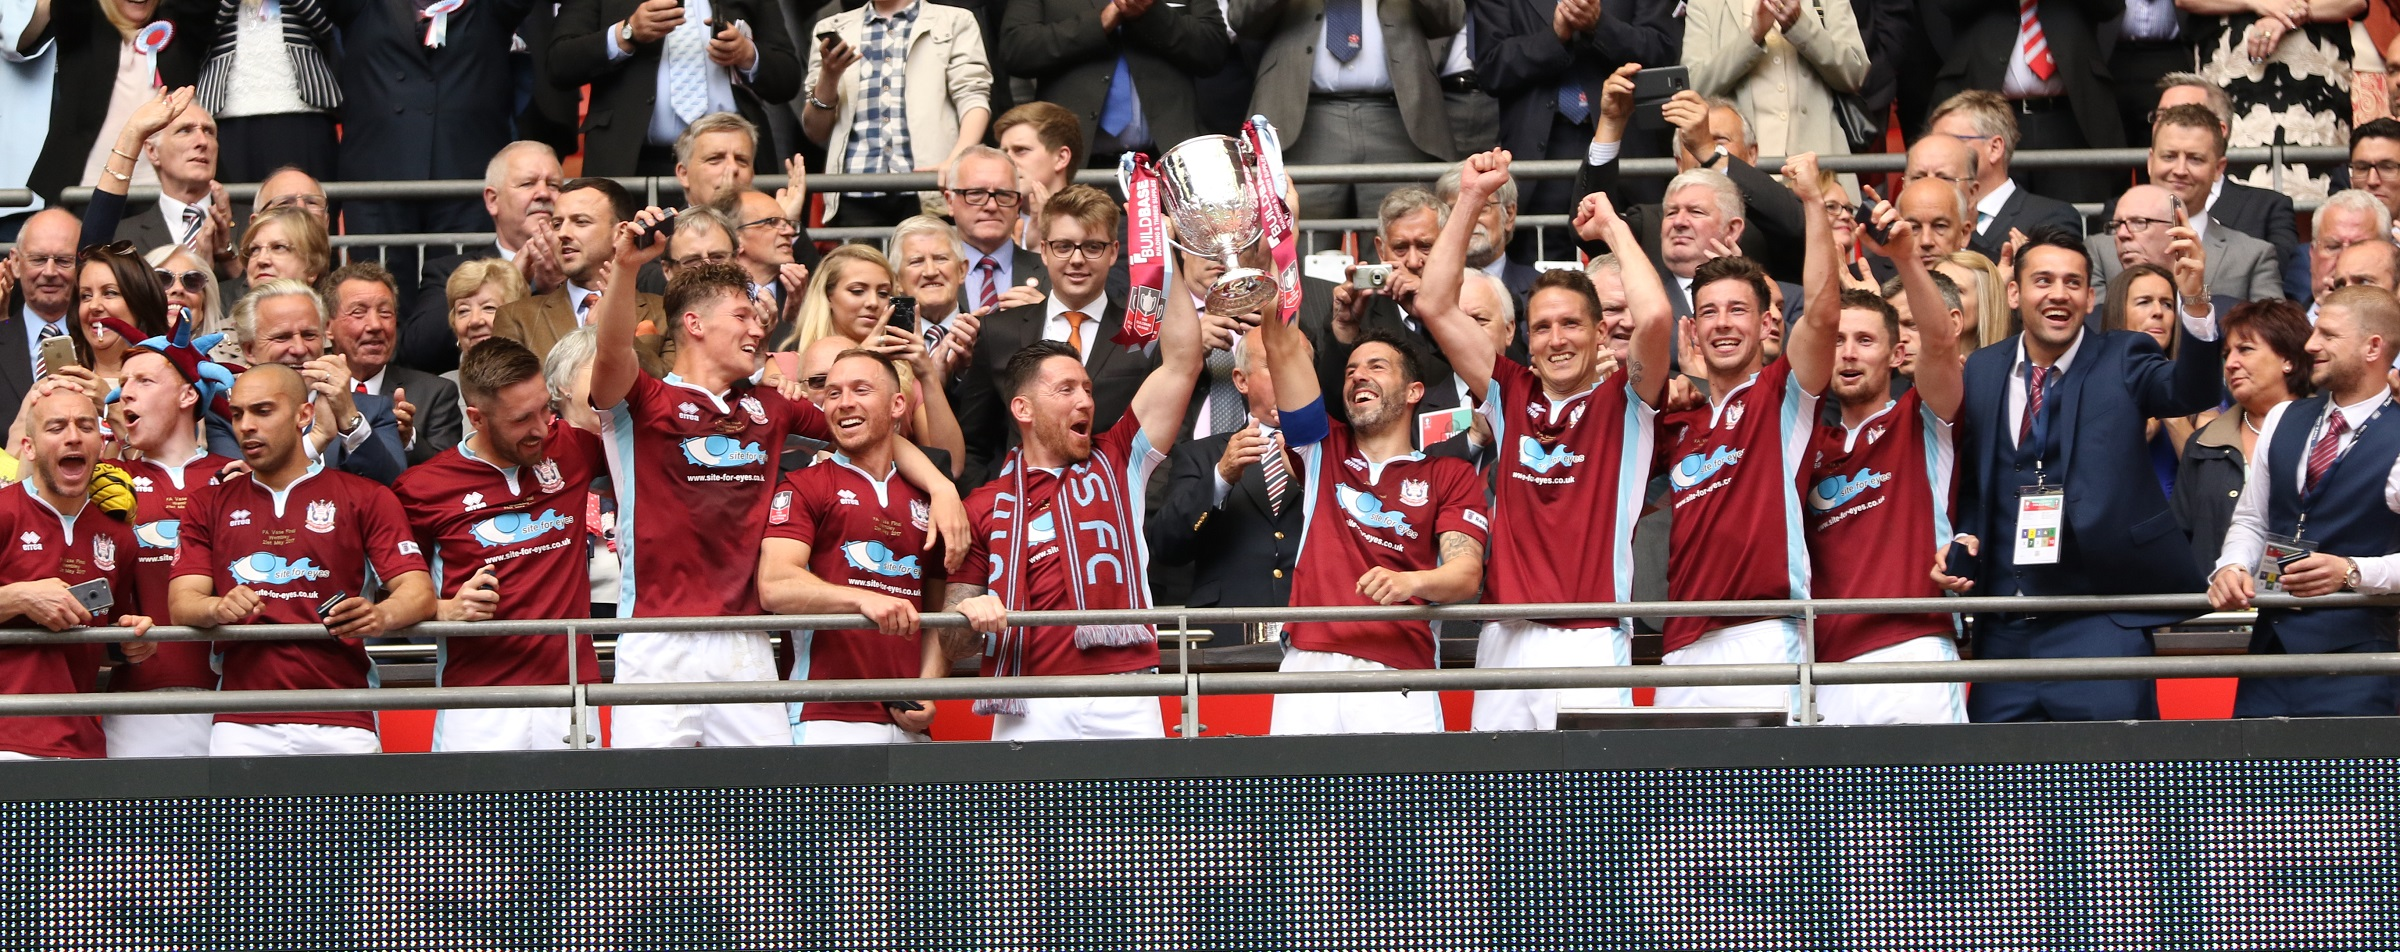 South Shields 4-0 Cleethorpes Town: Mariners win FA Vase at Wembley